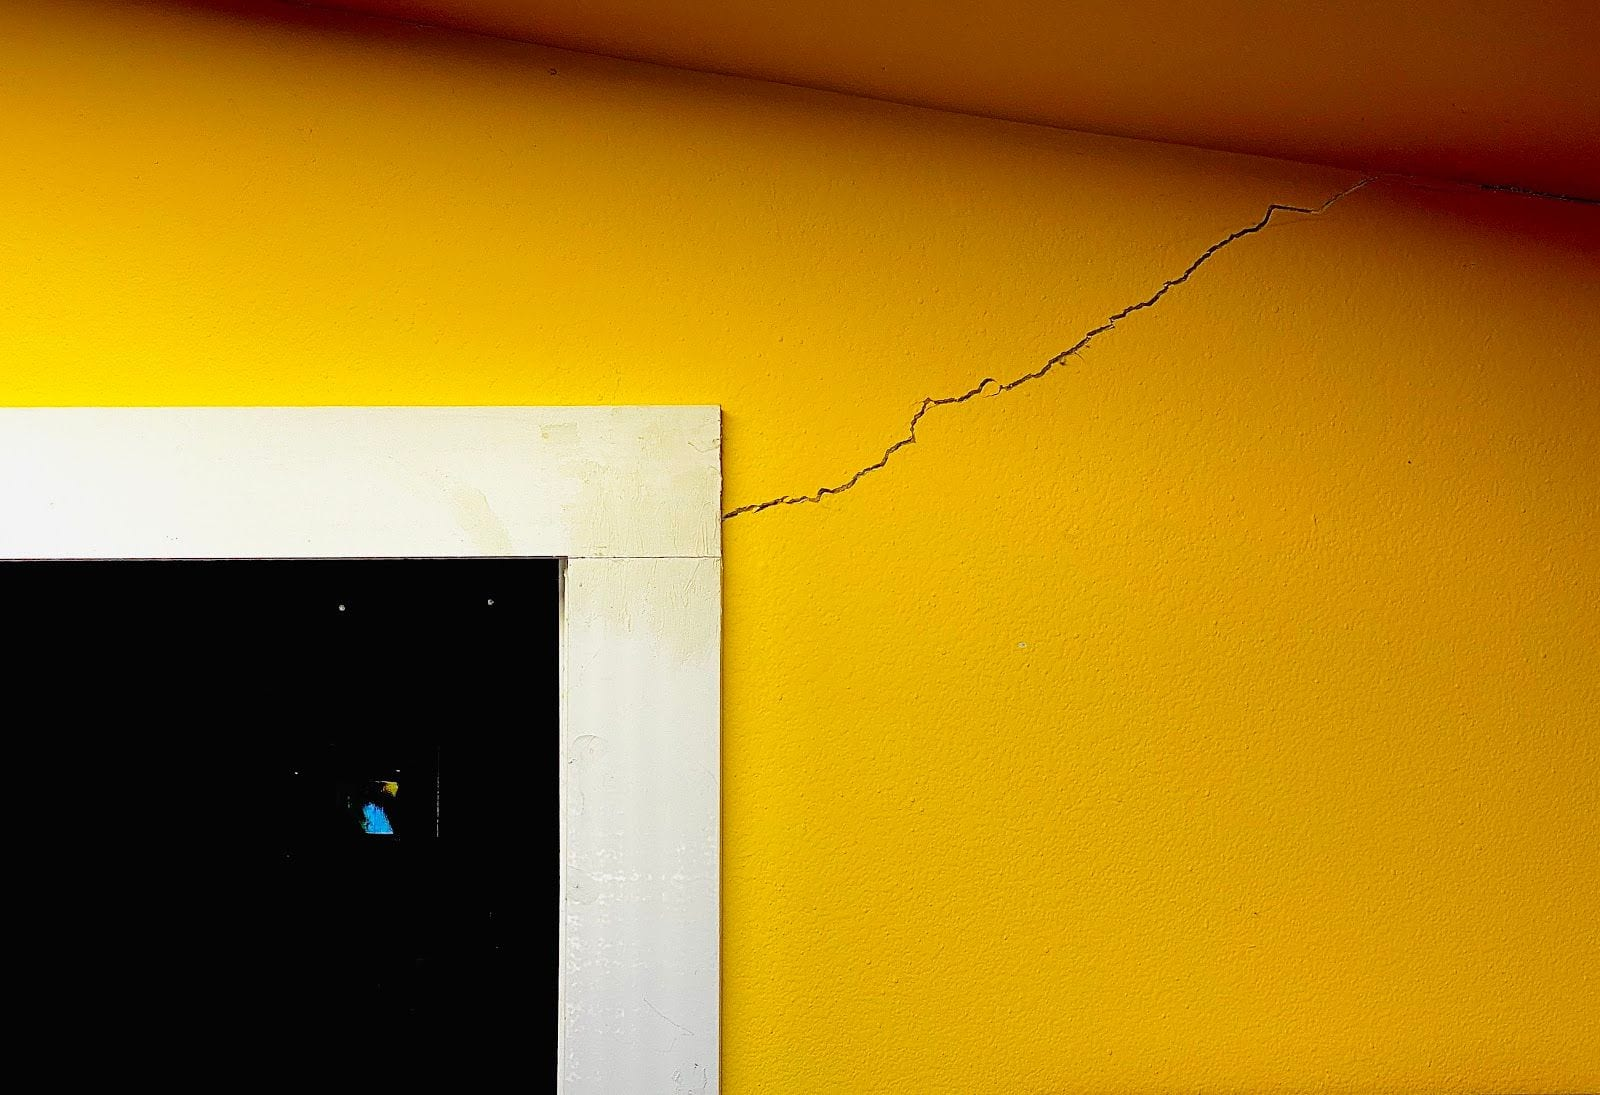 Interior signs of foundation problems - wall cracks (2)